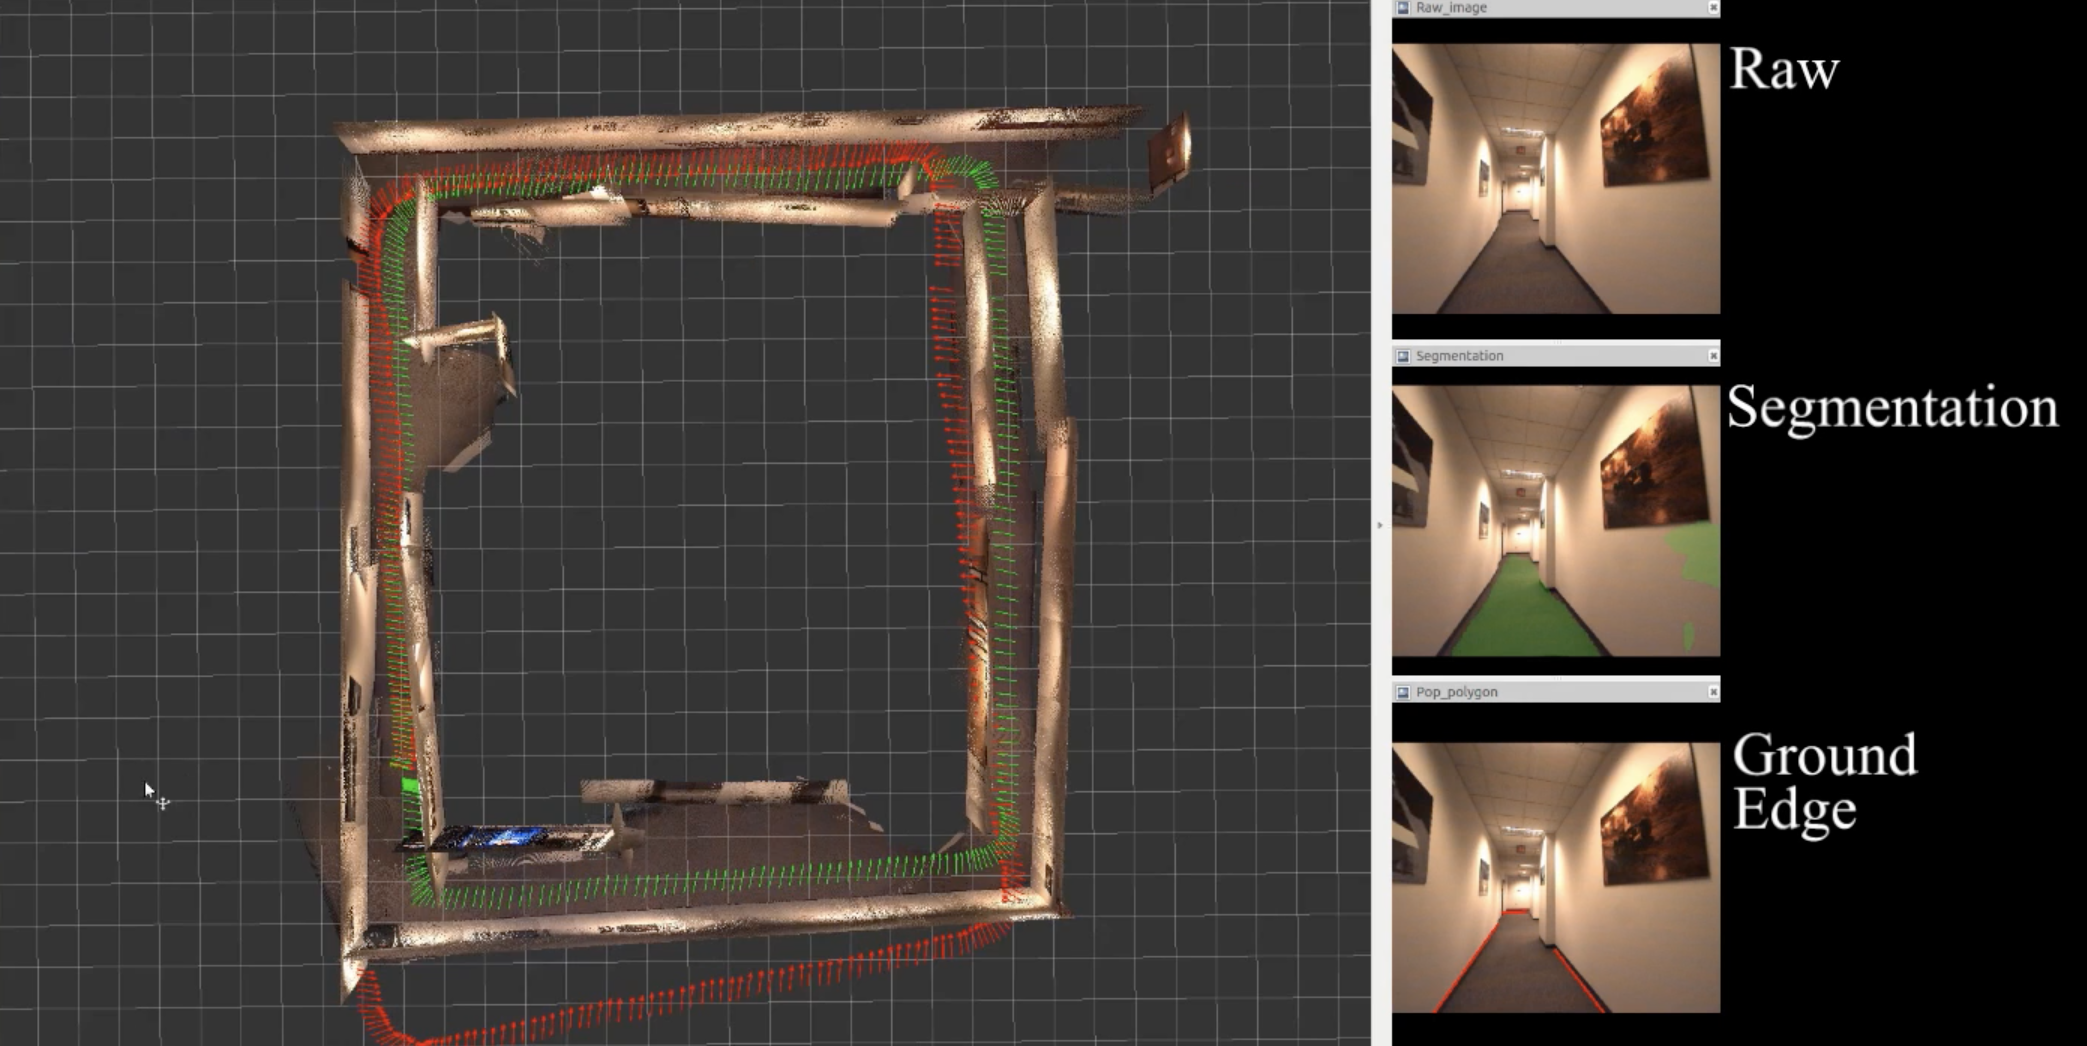 Real-time 3D Scene Layout from Images